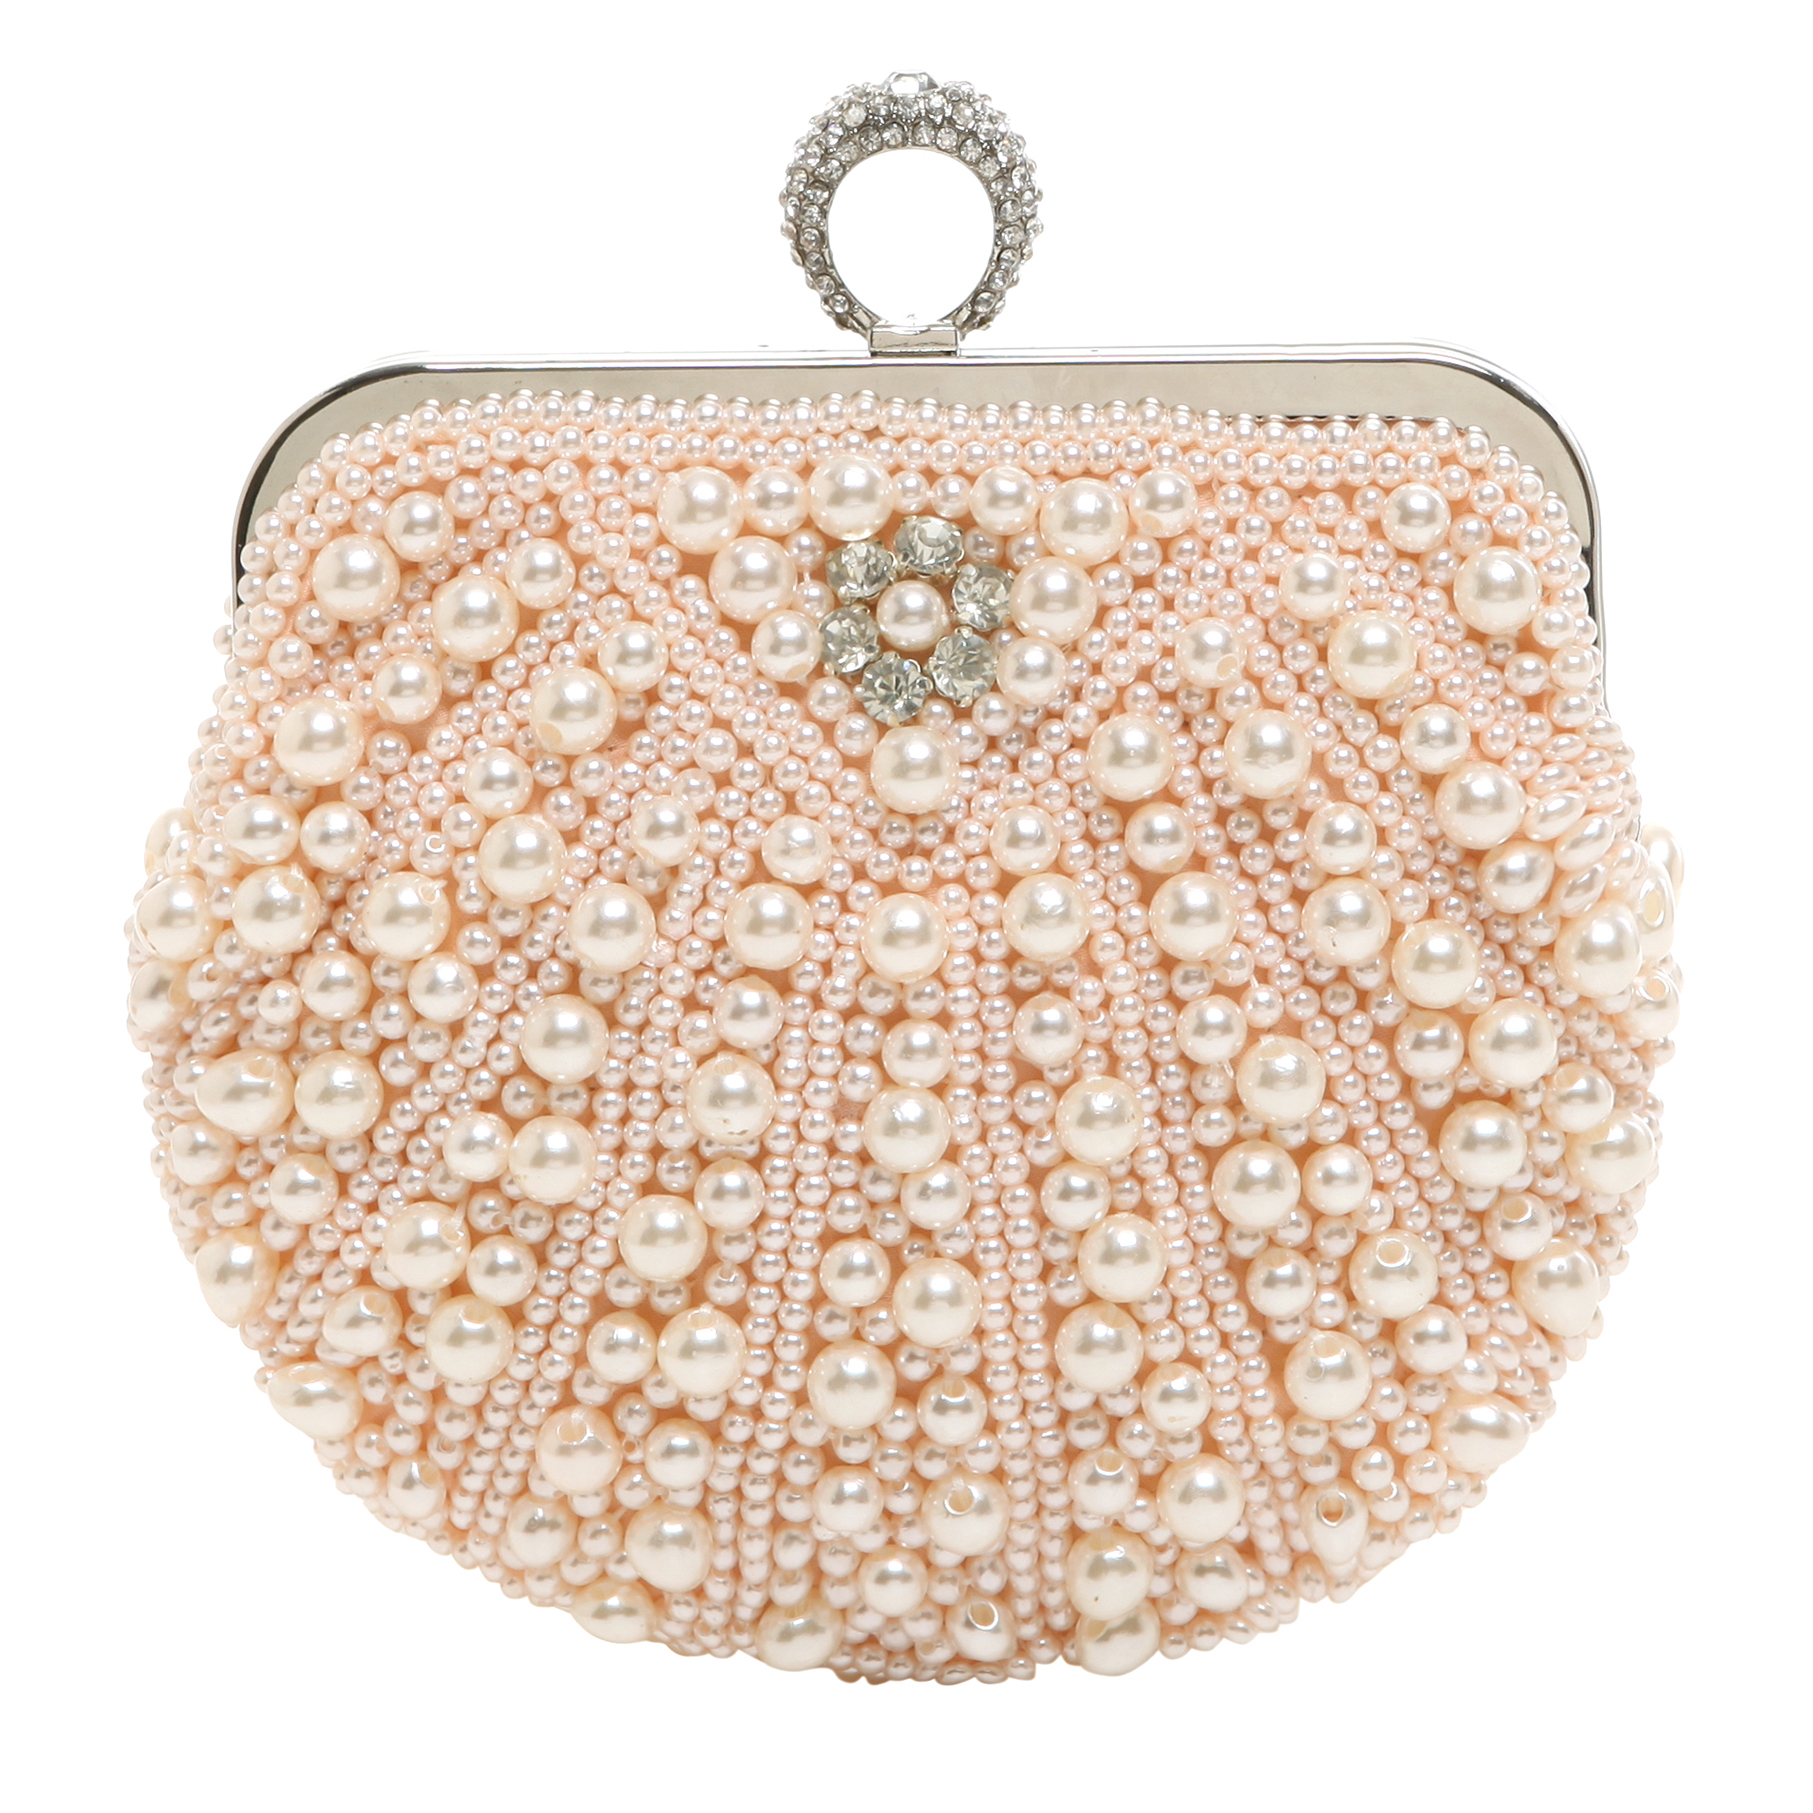 TIANA Champagne Pearl Rhinestone Evening Bag front